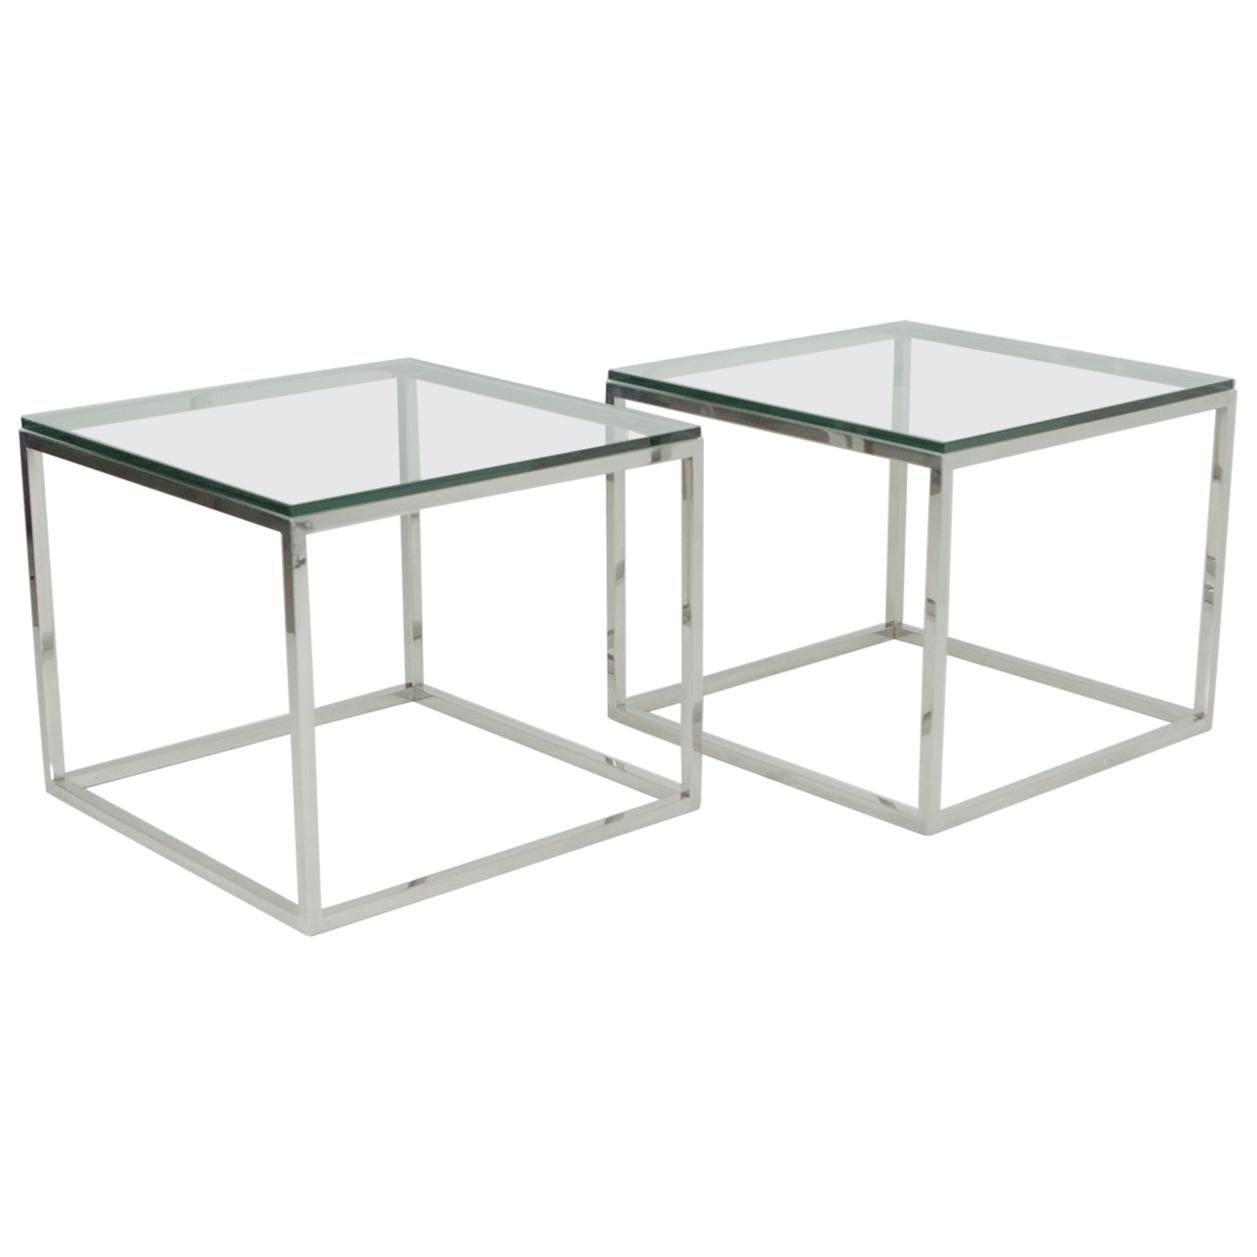 Mid-Century Modern Pair of Milo Baughman Style Chrome Glass Square End Tables